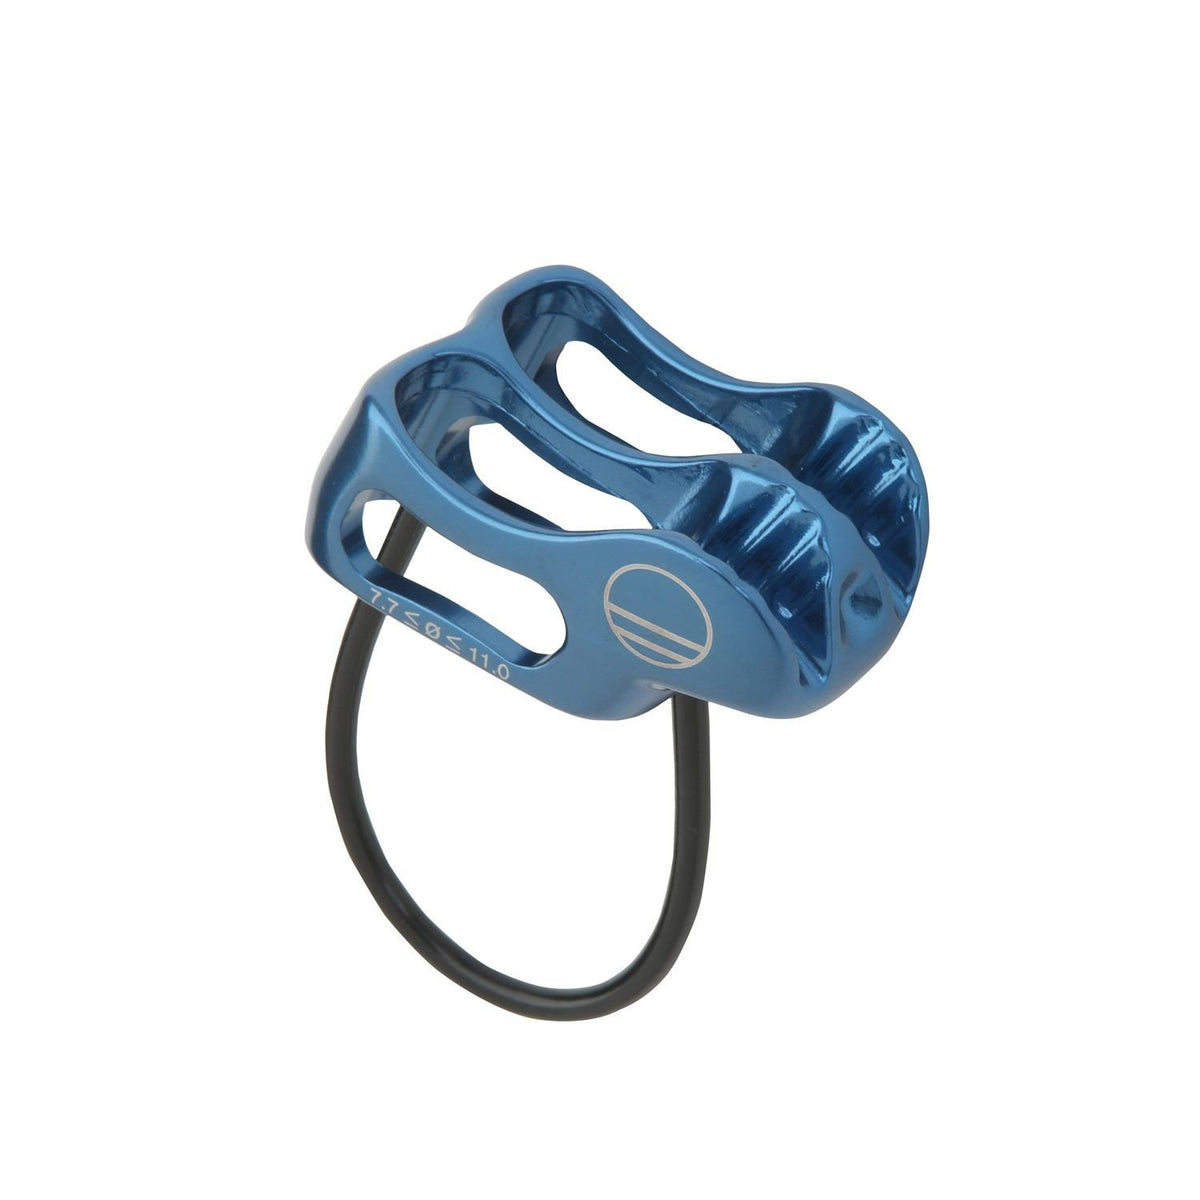 Wild Country Pro Lite belay device, front/side view showing in blue colour